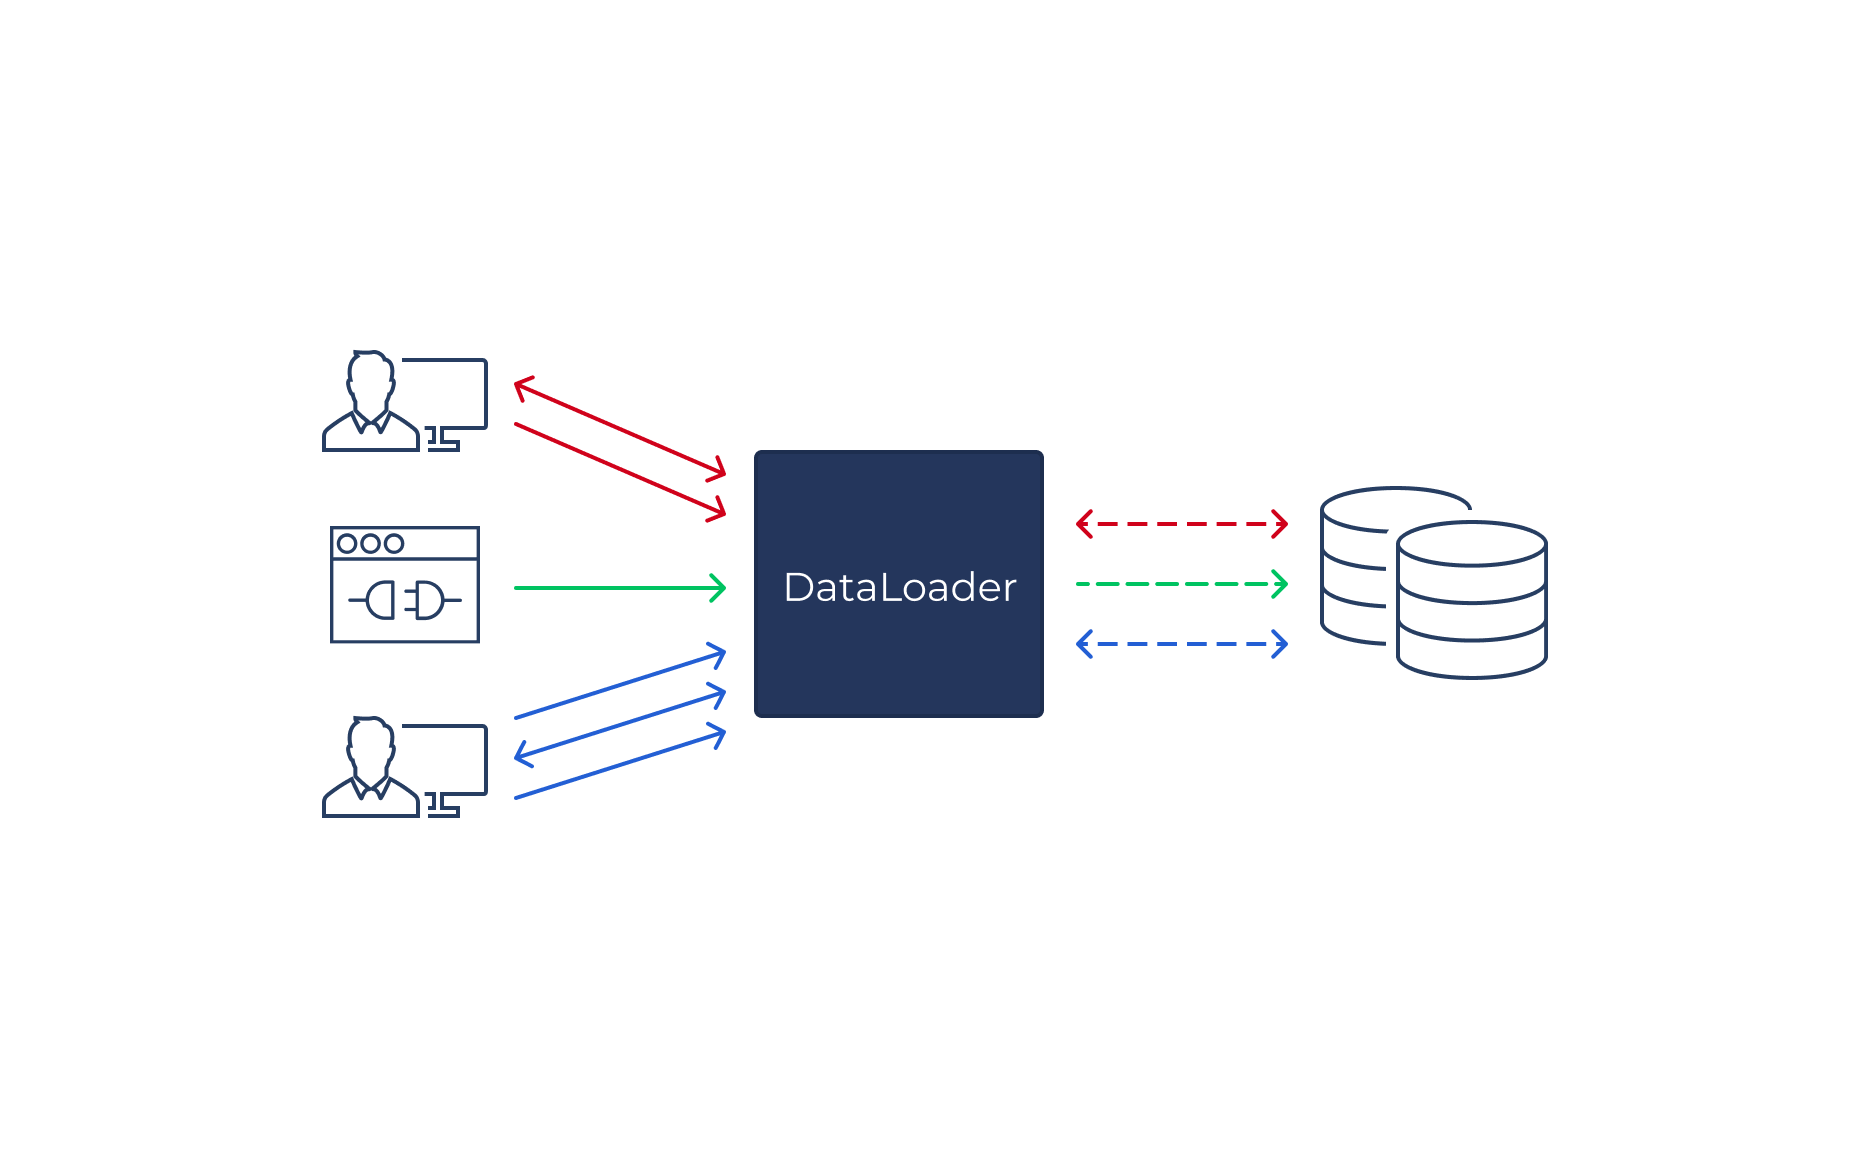 DataLoader streamlines requests from multiple sources to batched database queries